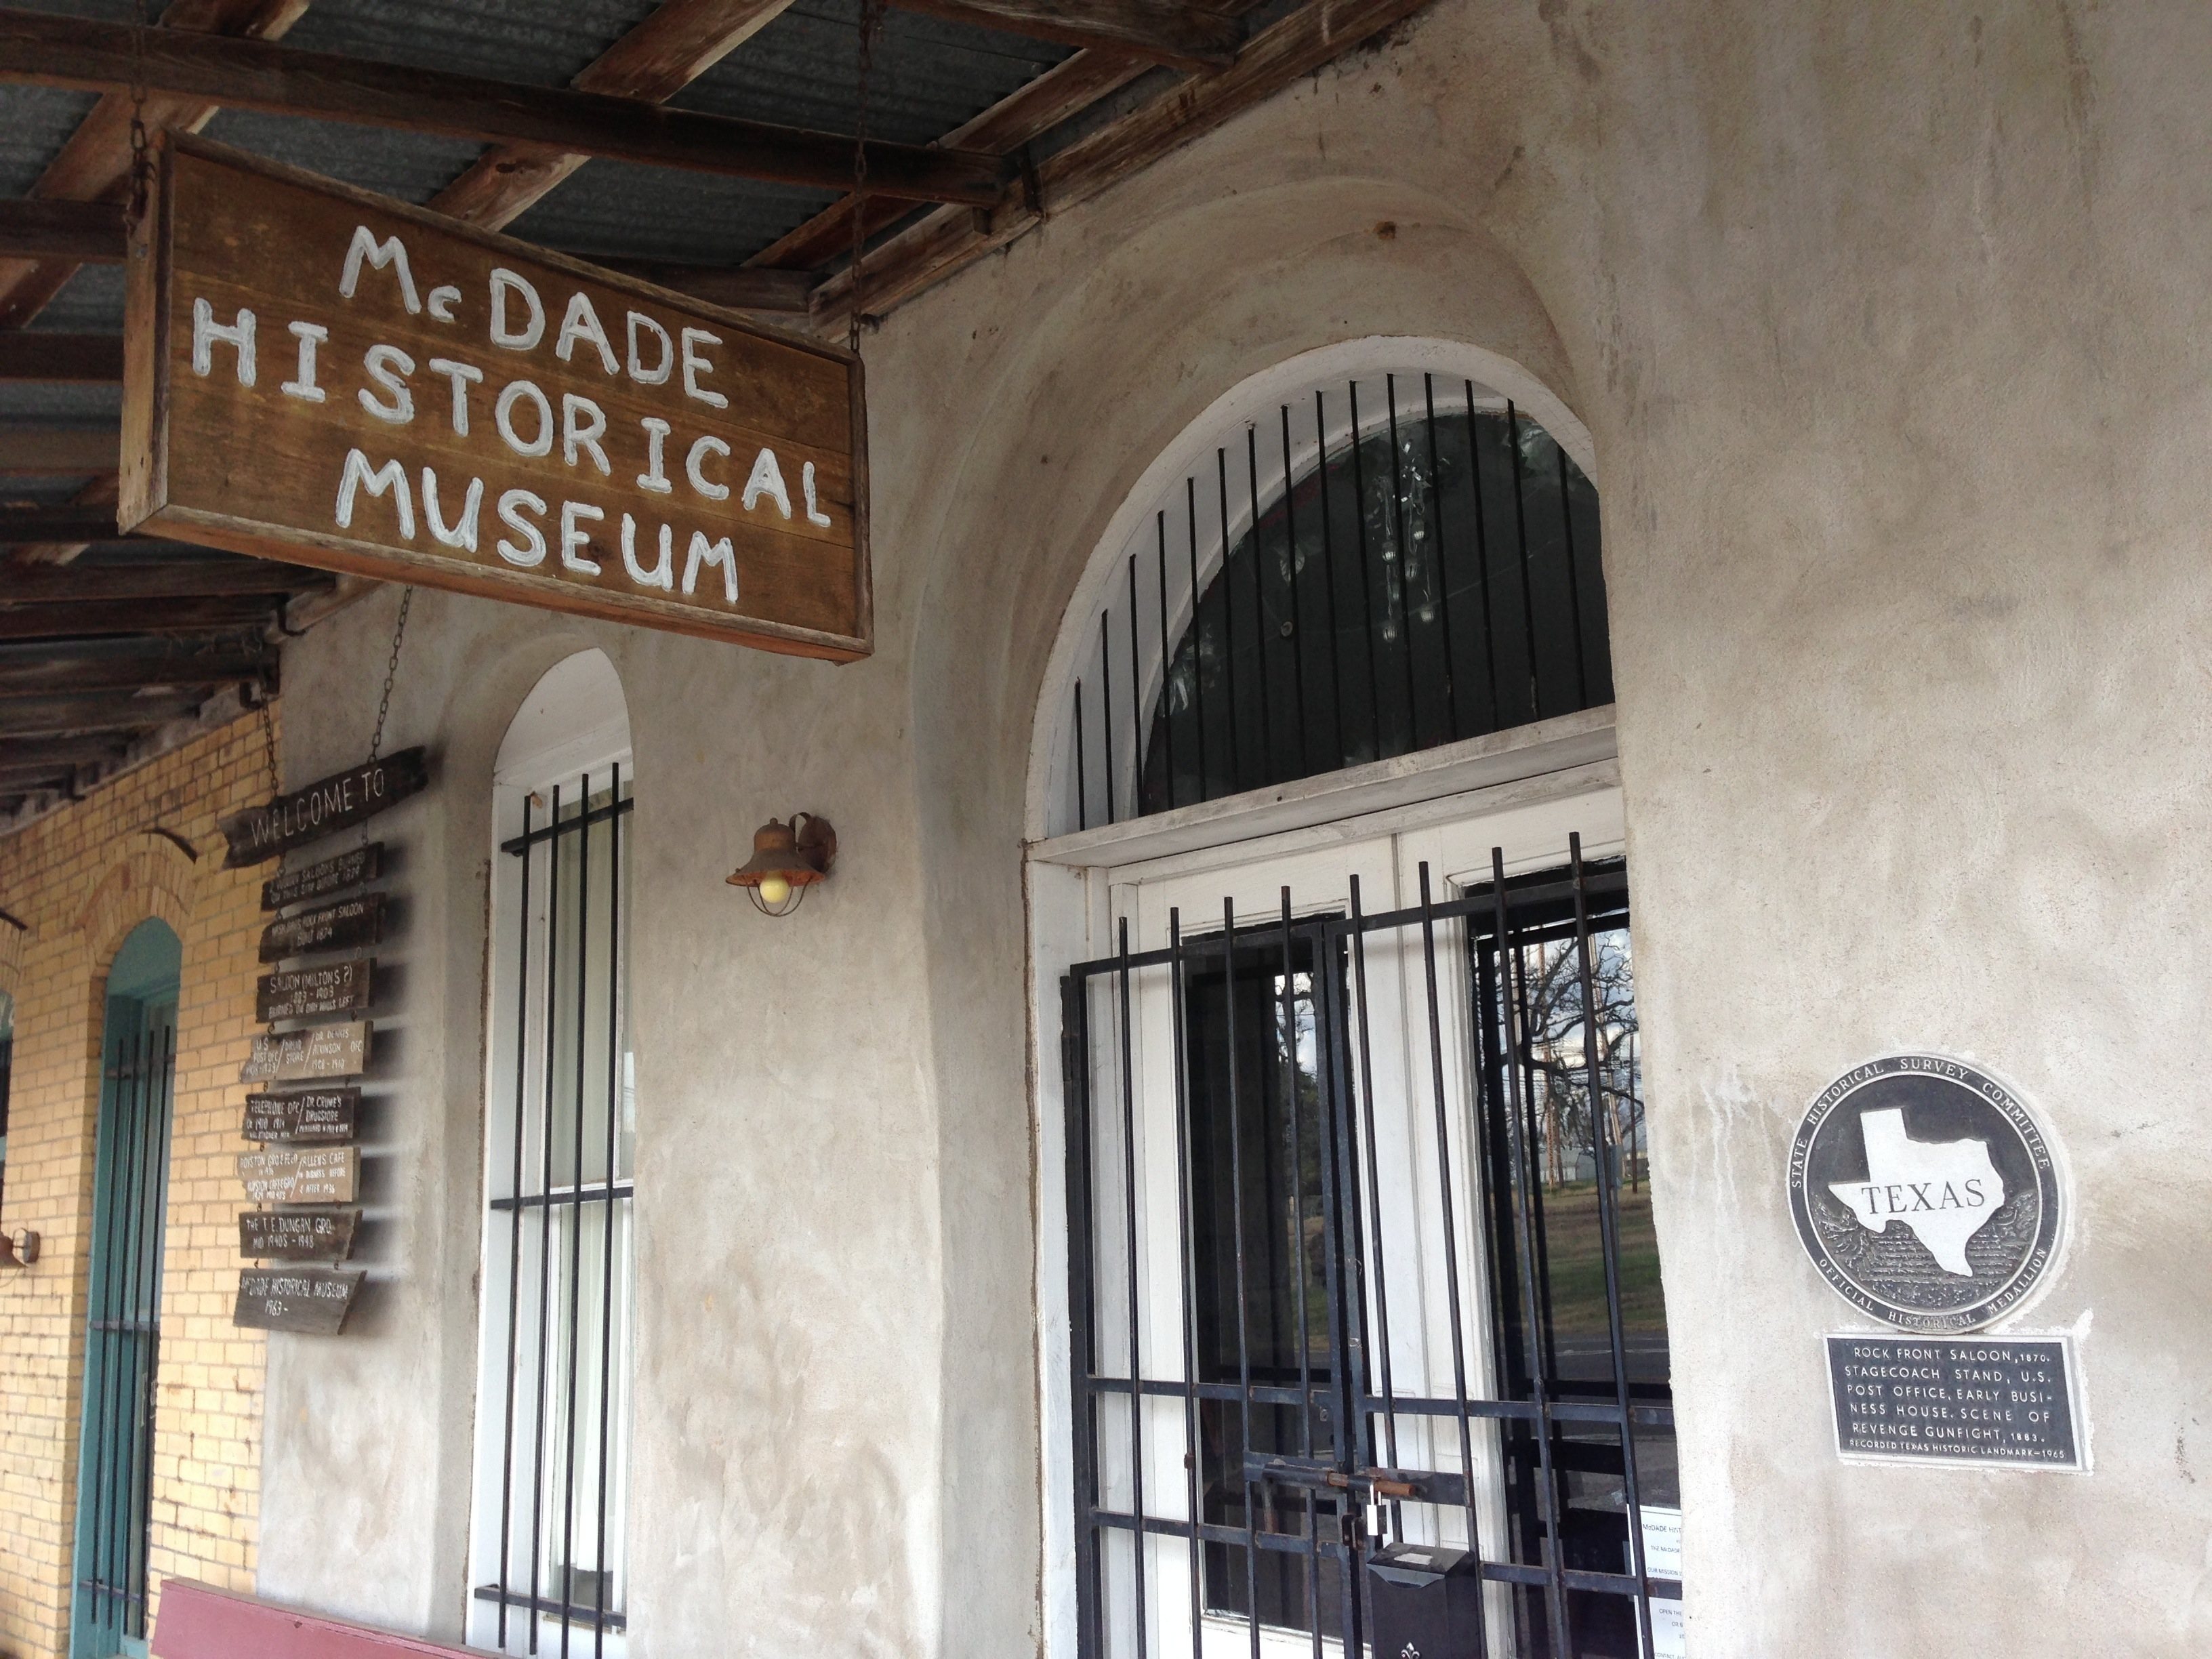 Had a Photo Shoot Near McDade, TX – Historical Museum